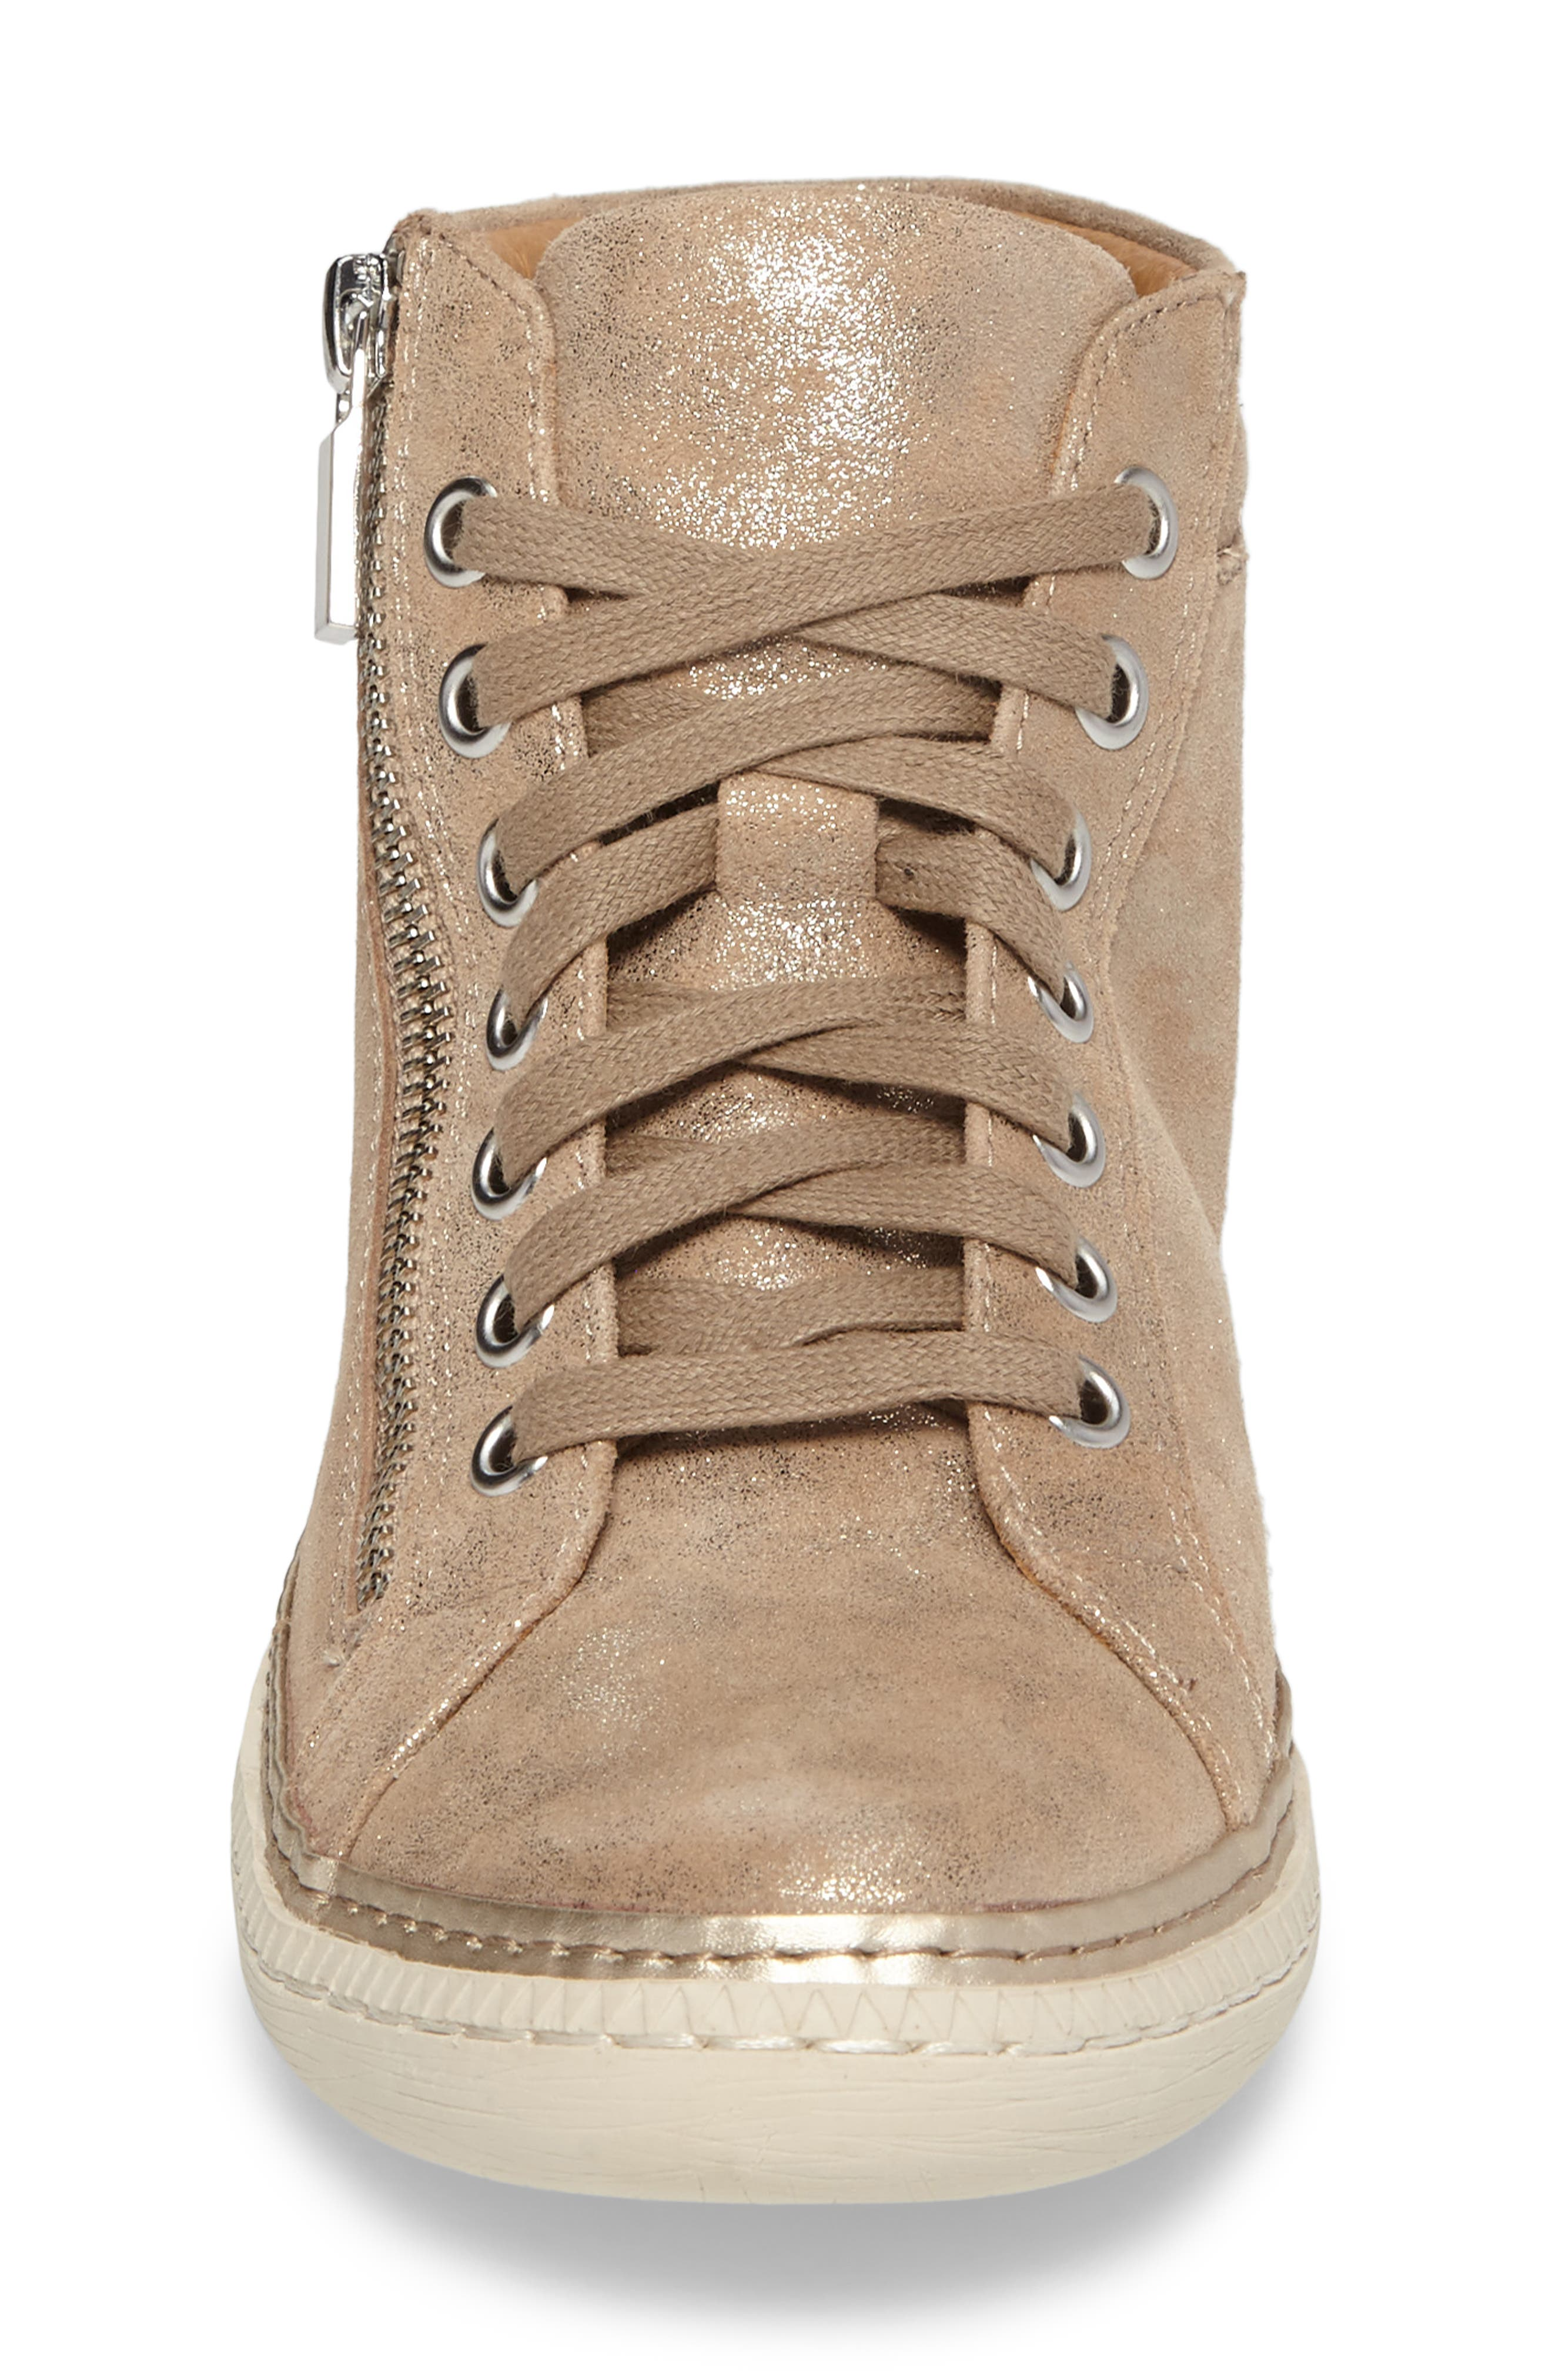 Annaleigh High Top Sneaker,                             Alternate thumbnail 4, color,                             ANTHRACITE FOIL SUEDE